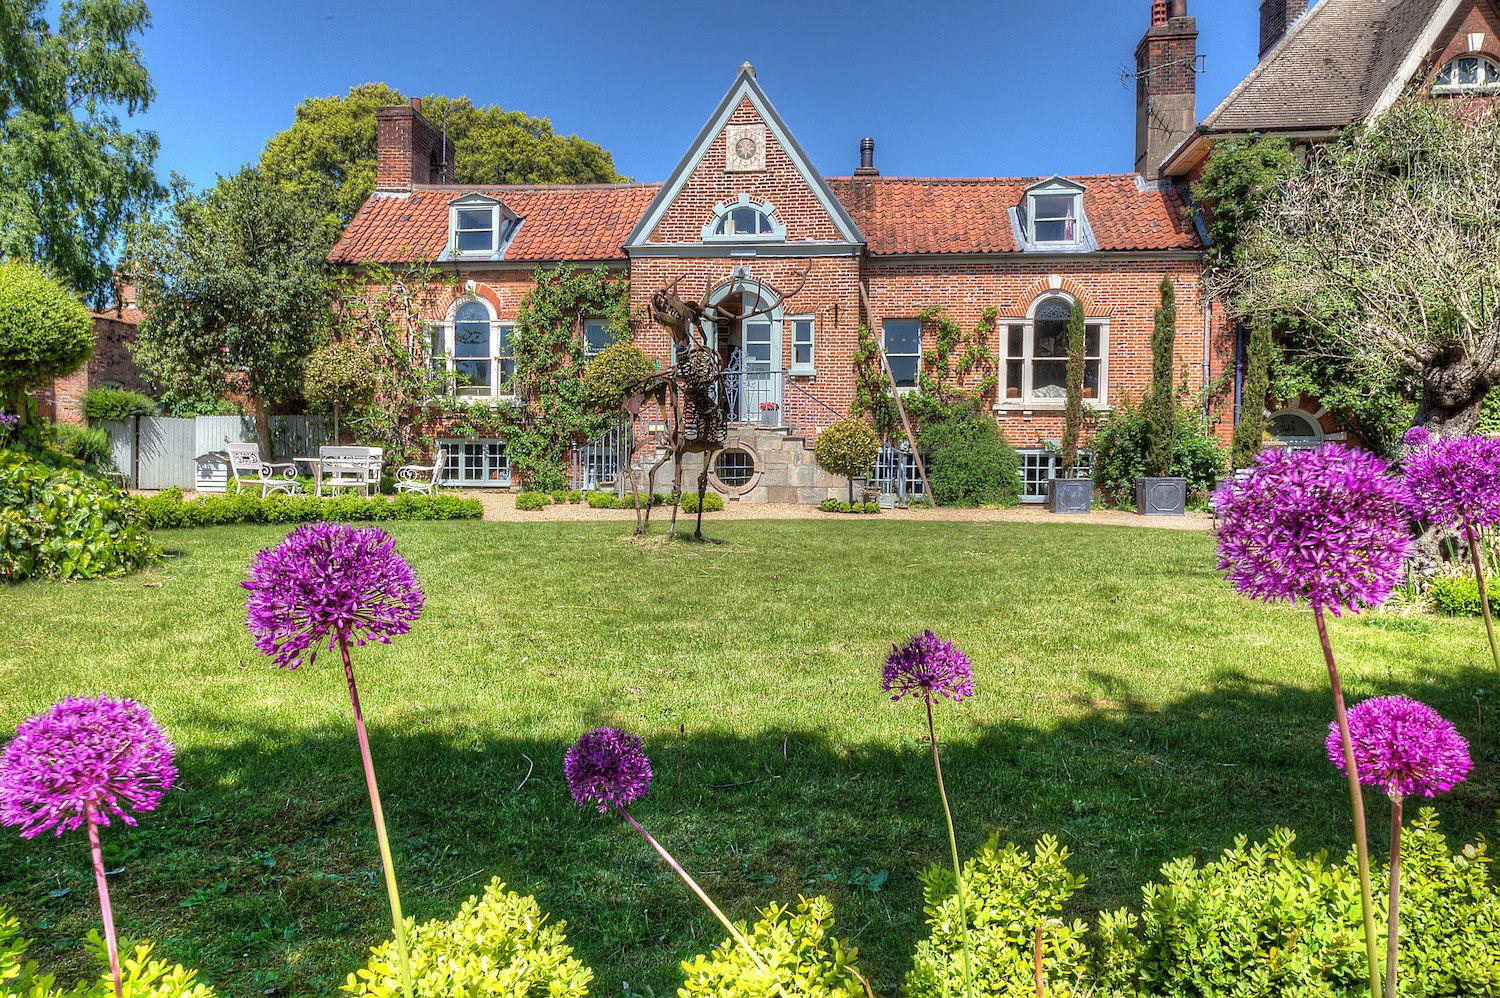 Hotels in East Anglia holidays at Cool Places